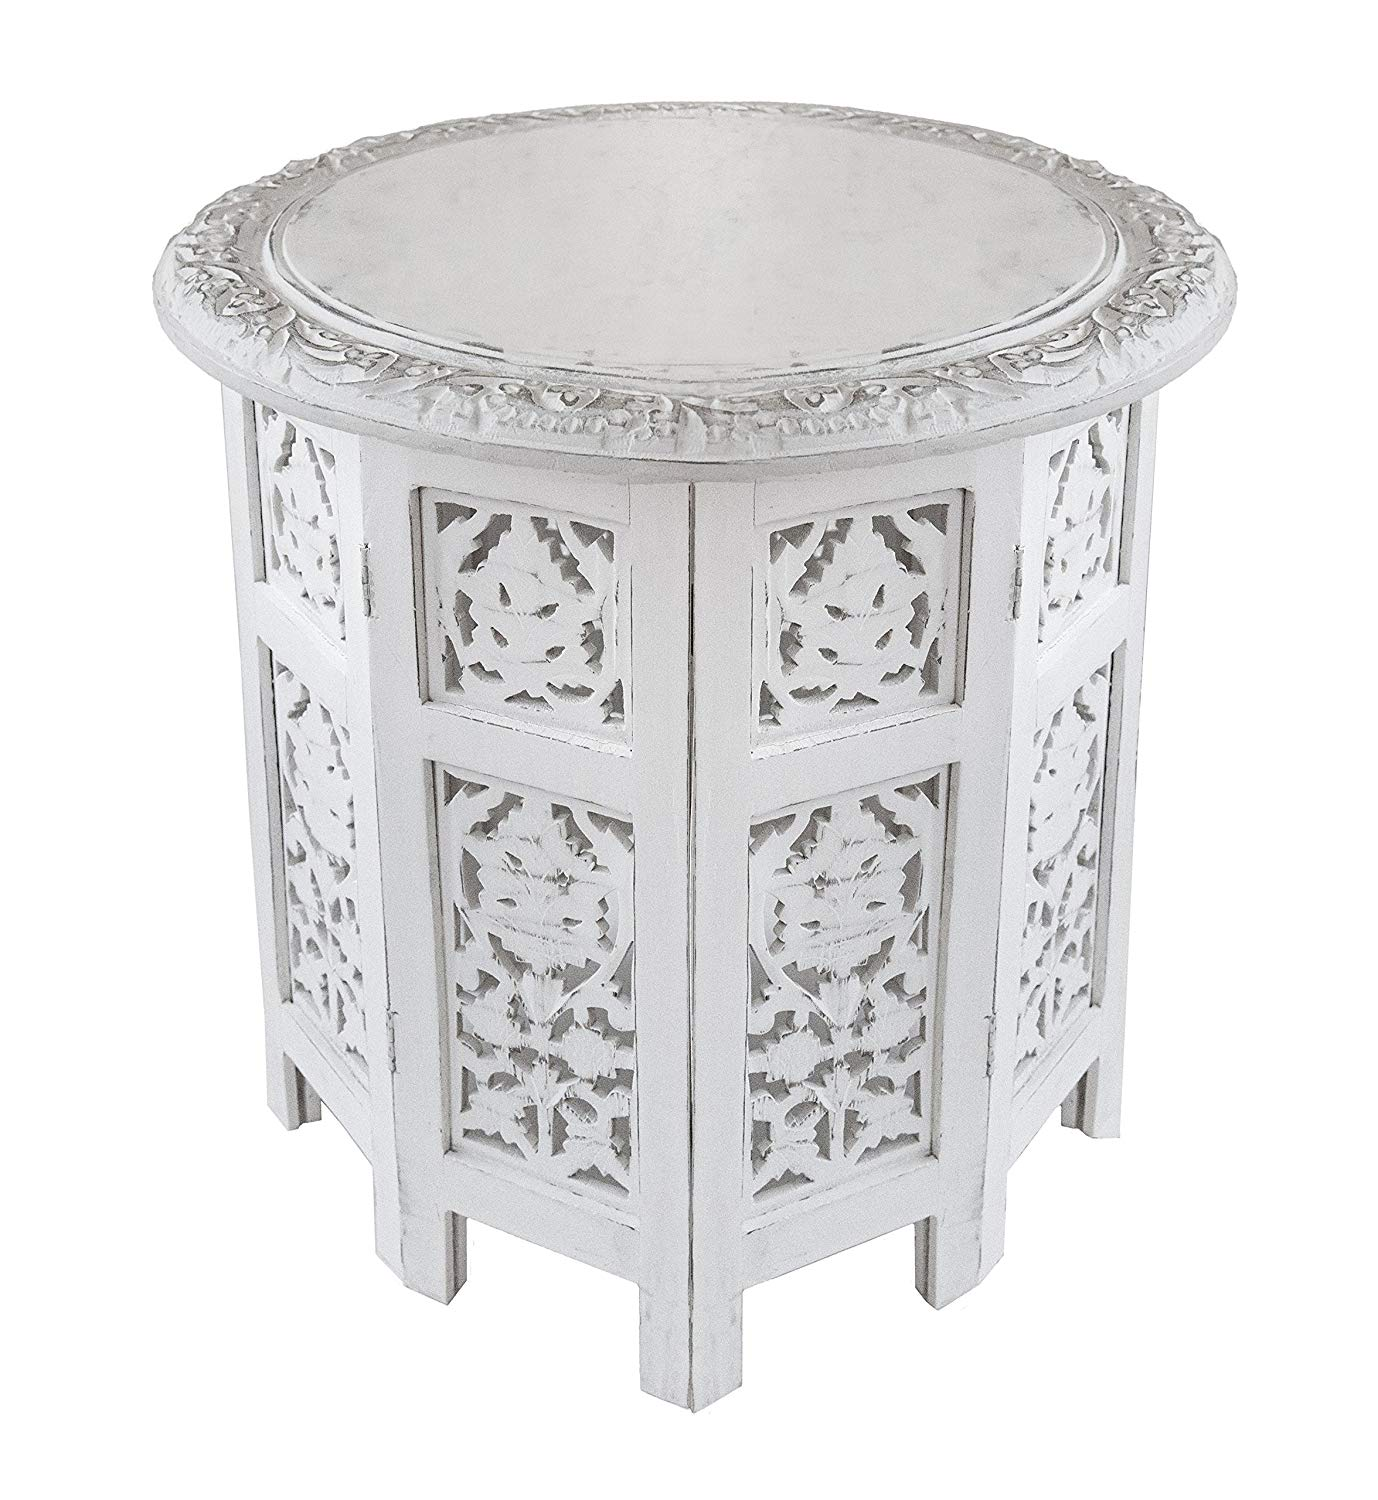 cotton craft jaipur solid wood handcrafted carved antique white accent table folding coffee inch round top high kitchen unusual tables design ideas teak outdoor rustic tablecloth